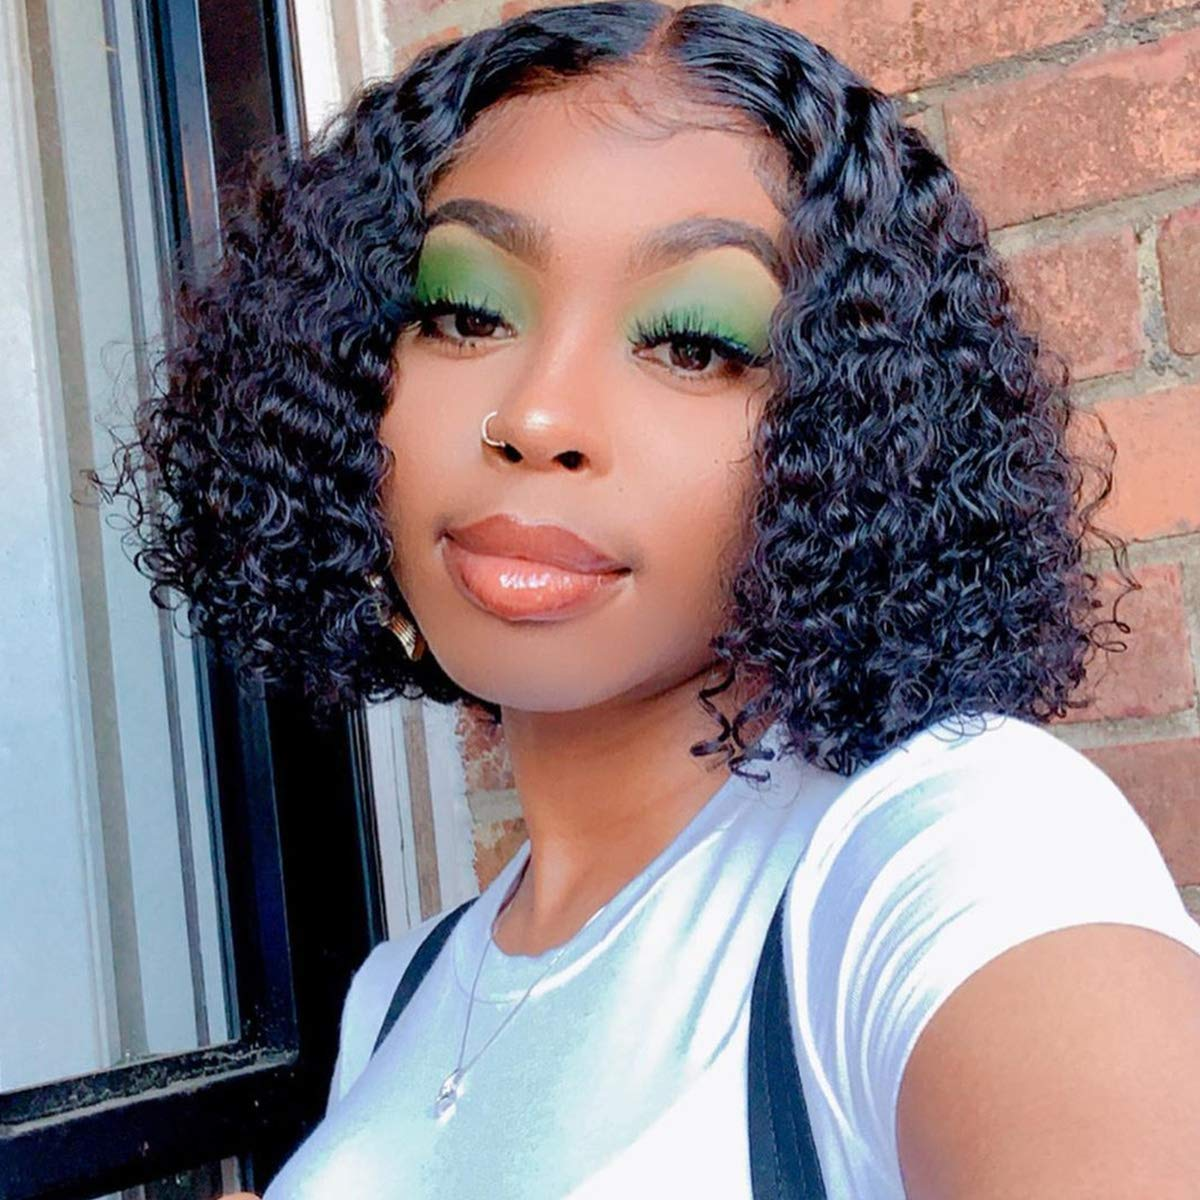 Bob Wigs Kinky Curly 13X6 Transparent Lace Front Wigs Human Hair with Pre Plucked Hairline Original Queen Hair Wigs for Women Natural Color 10Inch